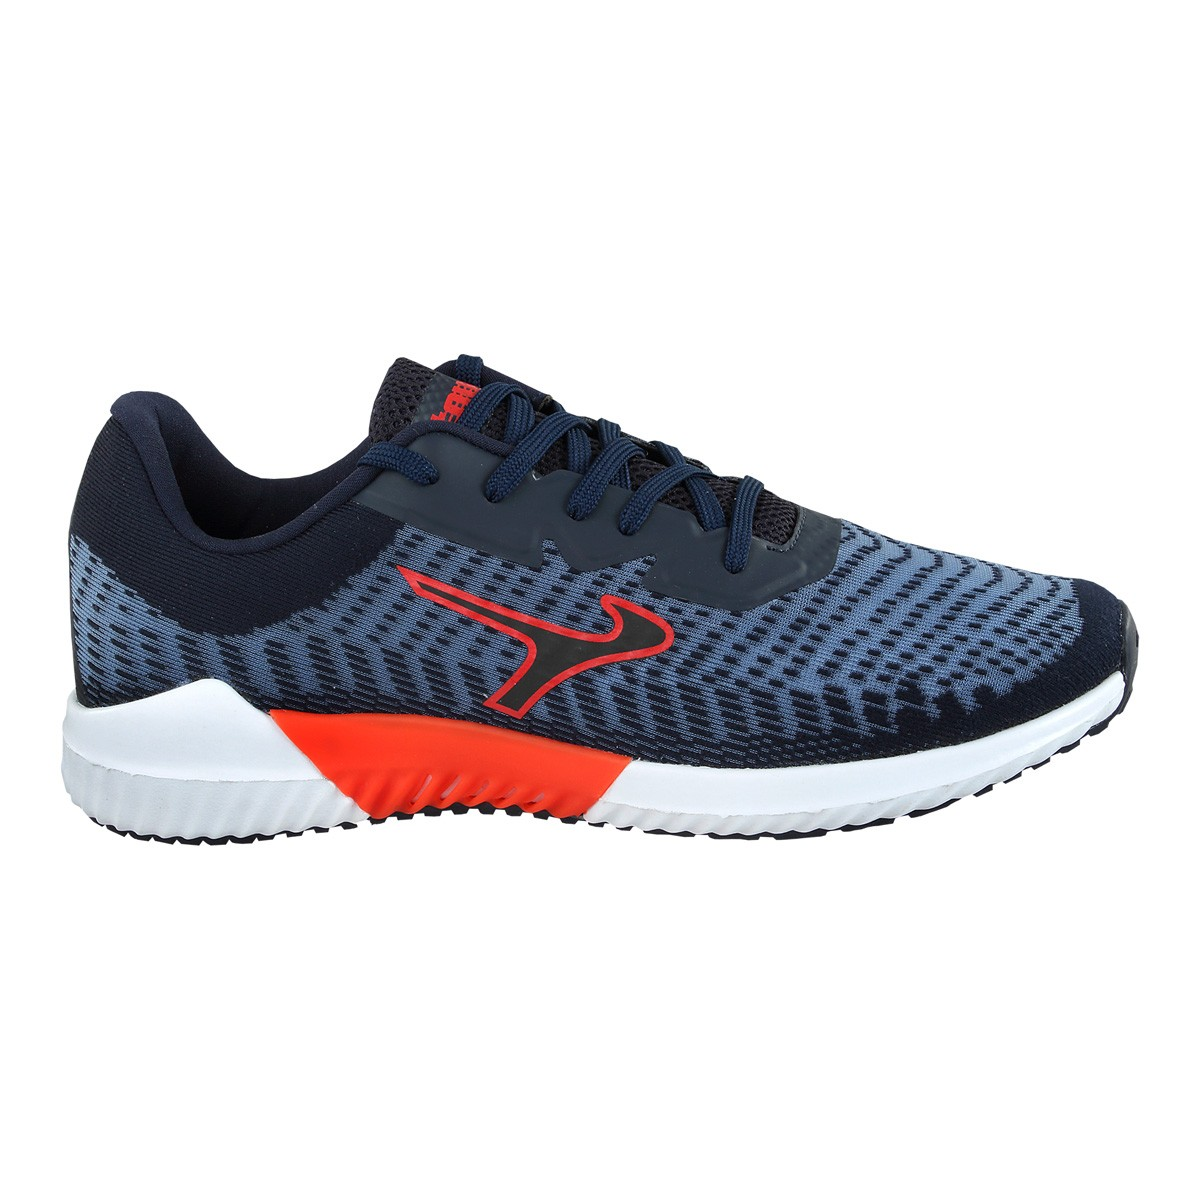 Touch-950-Navy/Scarlet